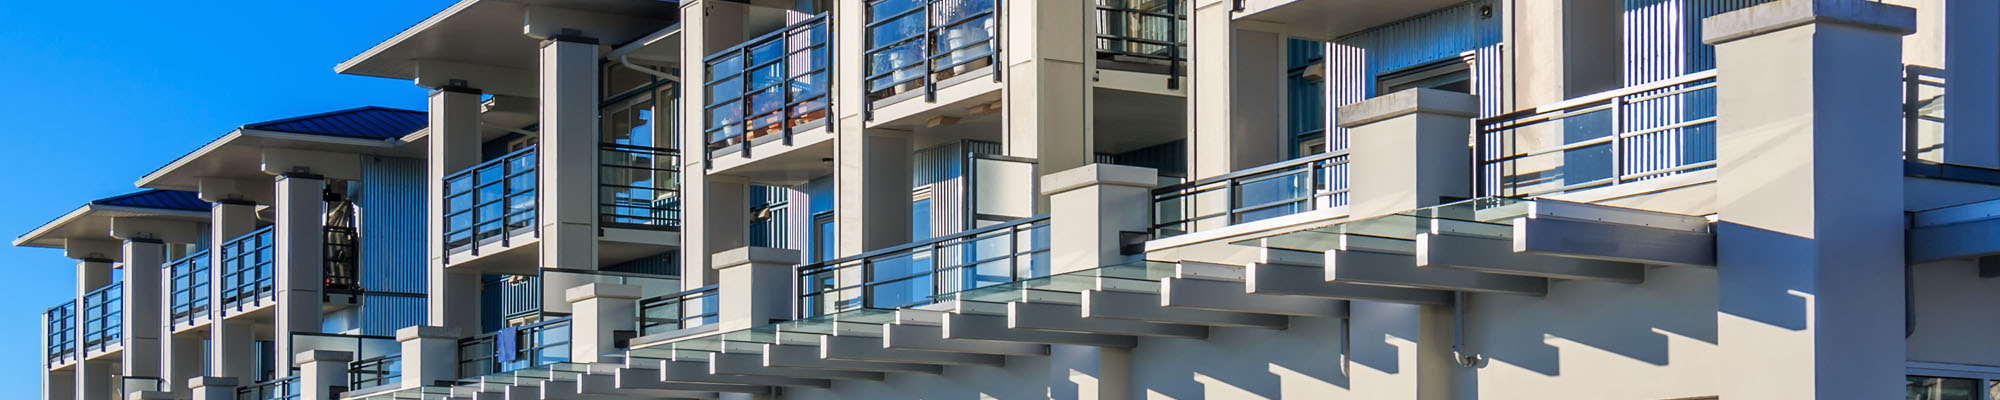 Apartment Complex | Property Management in New Jersey